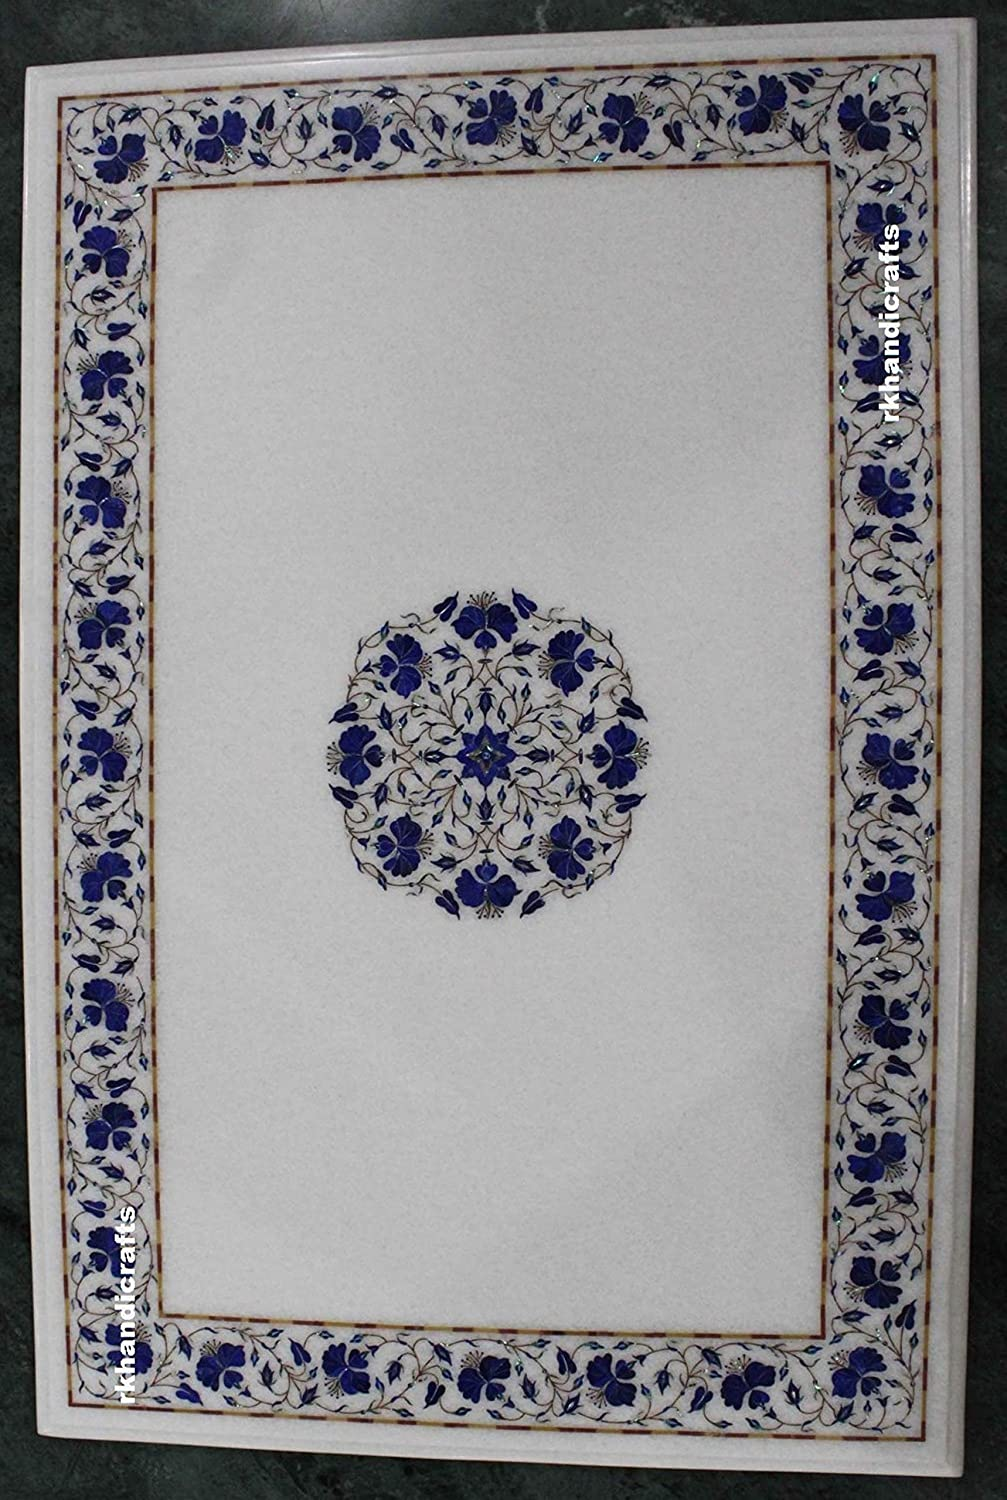 24 x 36 Inches Luxury Patio Coffee Table, Coffee Table Top Lapis Lazuli Inlaid Floral Design Perfect Home Interior 81EOMC9ehgLSL1500_